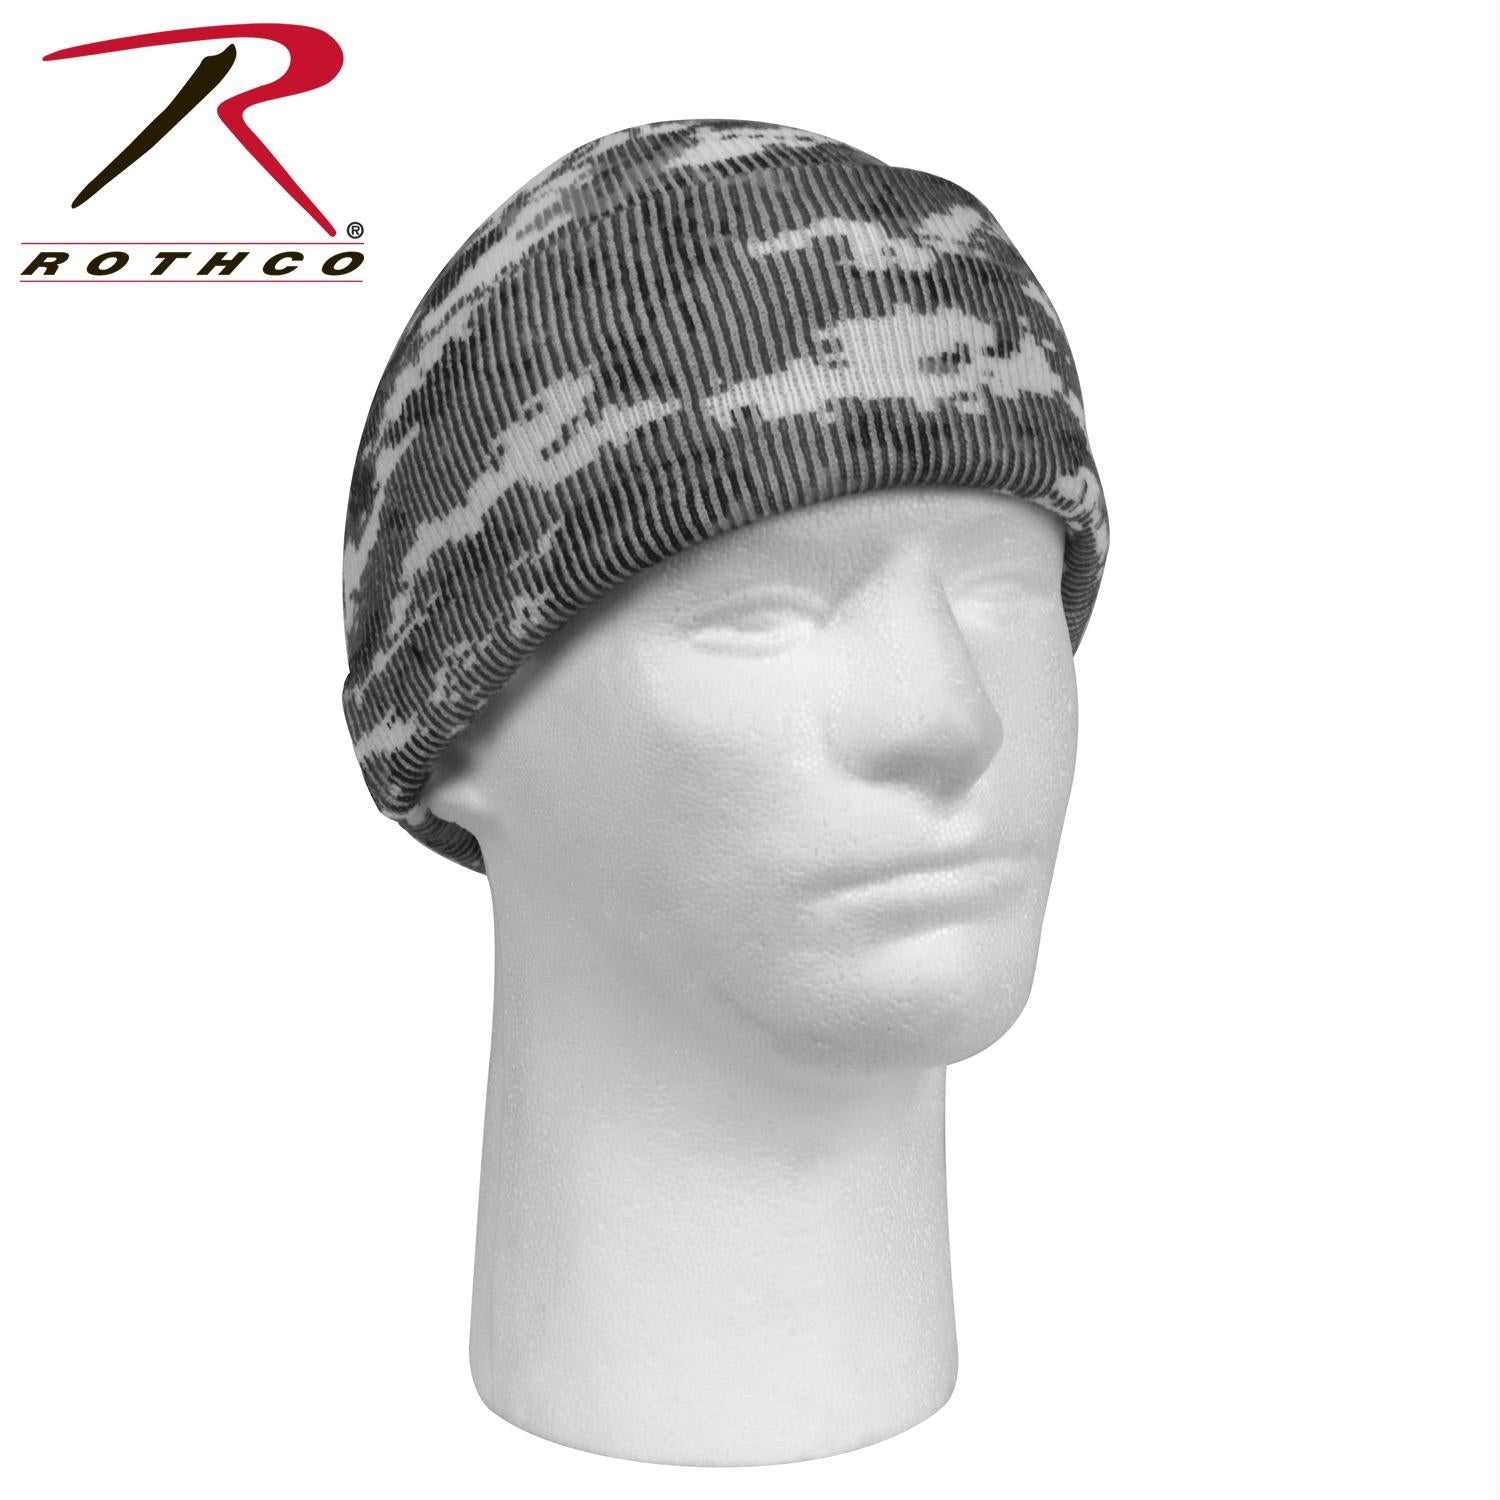 Rothco Deluxe Camo Watch Cap - City Digital Camo